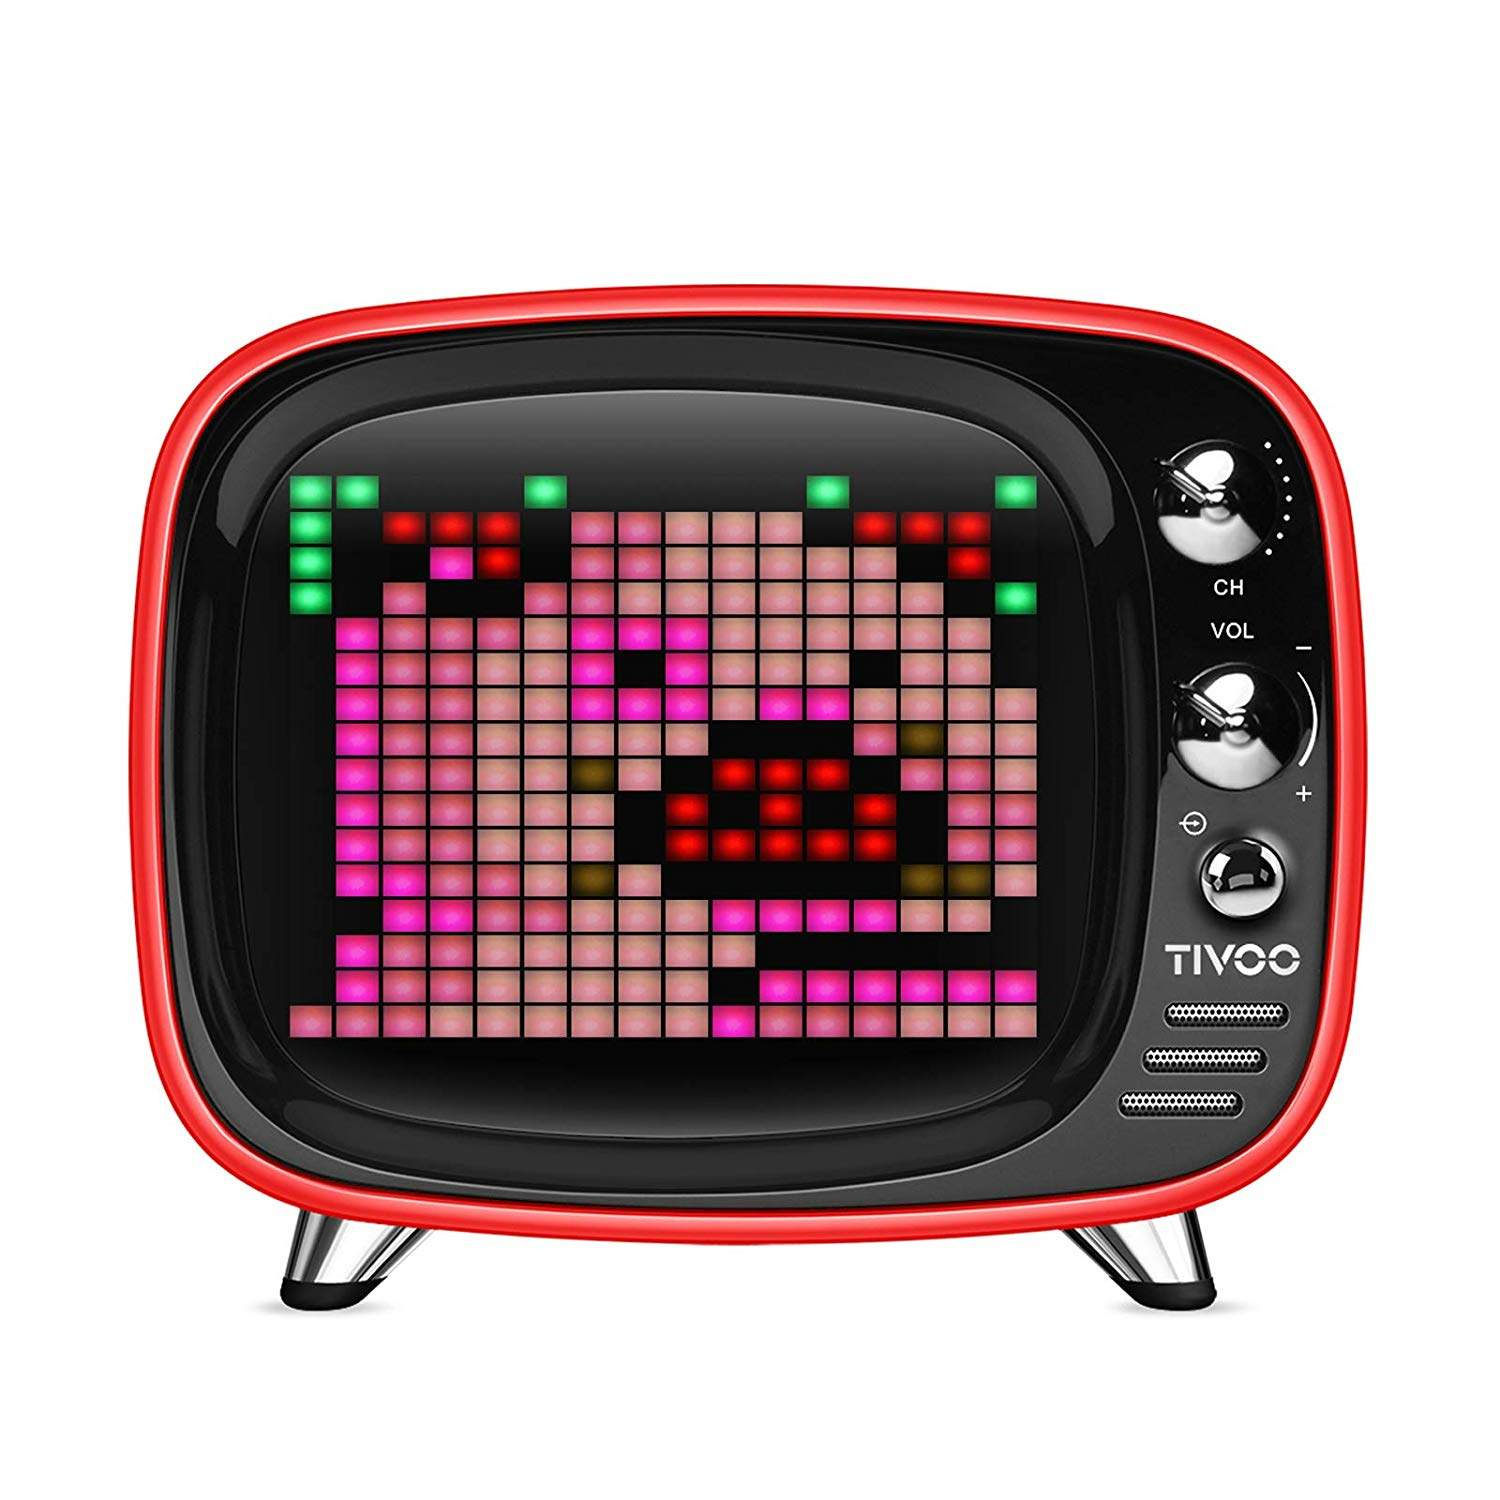 Buy Tivoo The Pixel Art Bluetooth Speaker Tivoo Retro 16x16 Pixel Art Diy Box Full Rgb Programmable Led By App Control Support Android Amp Ios Bluetooth Speaker Support Tf Card Amp